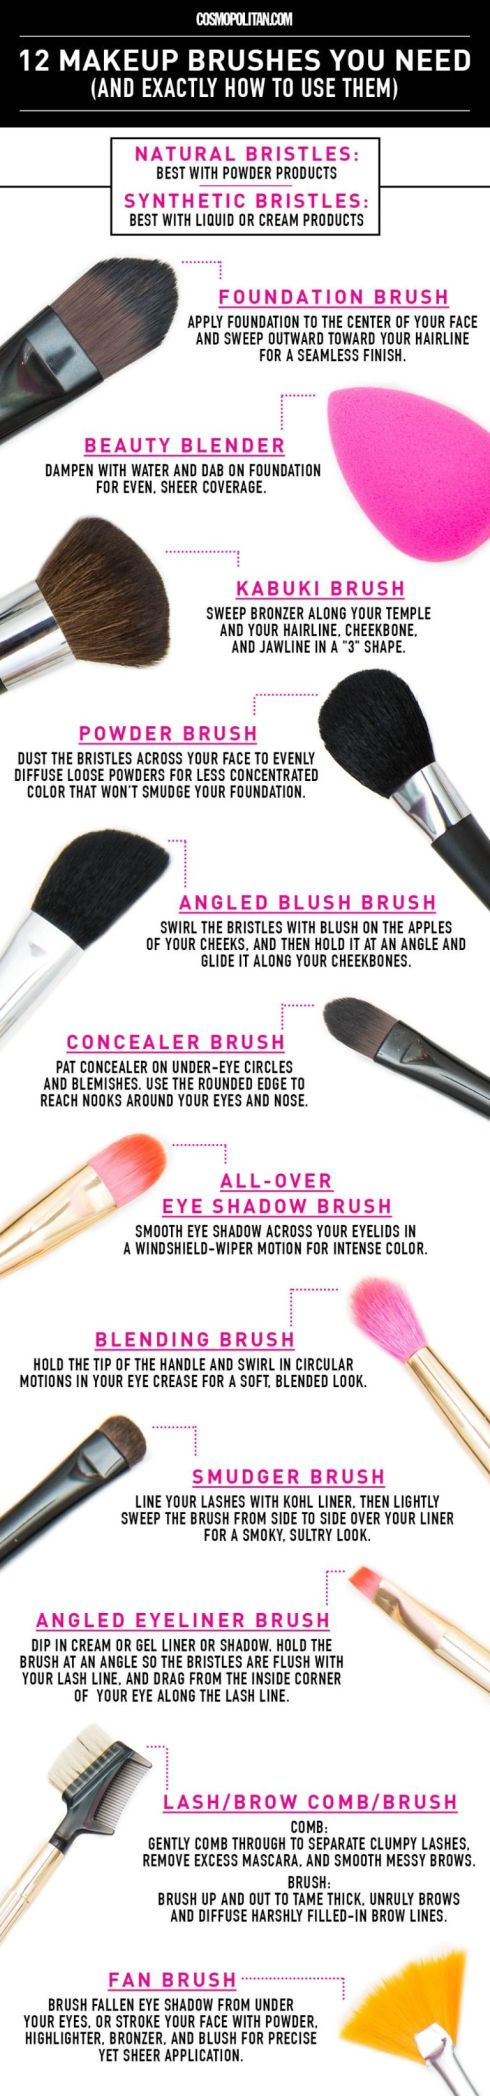 12 essential makeup brushes